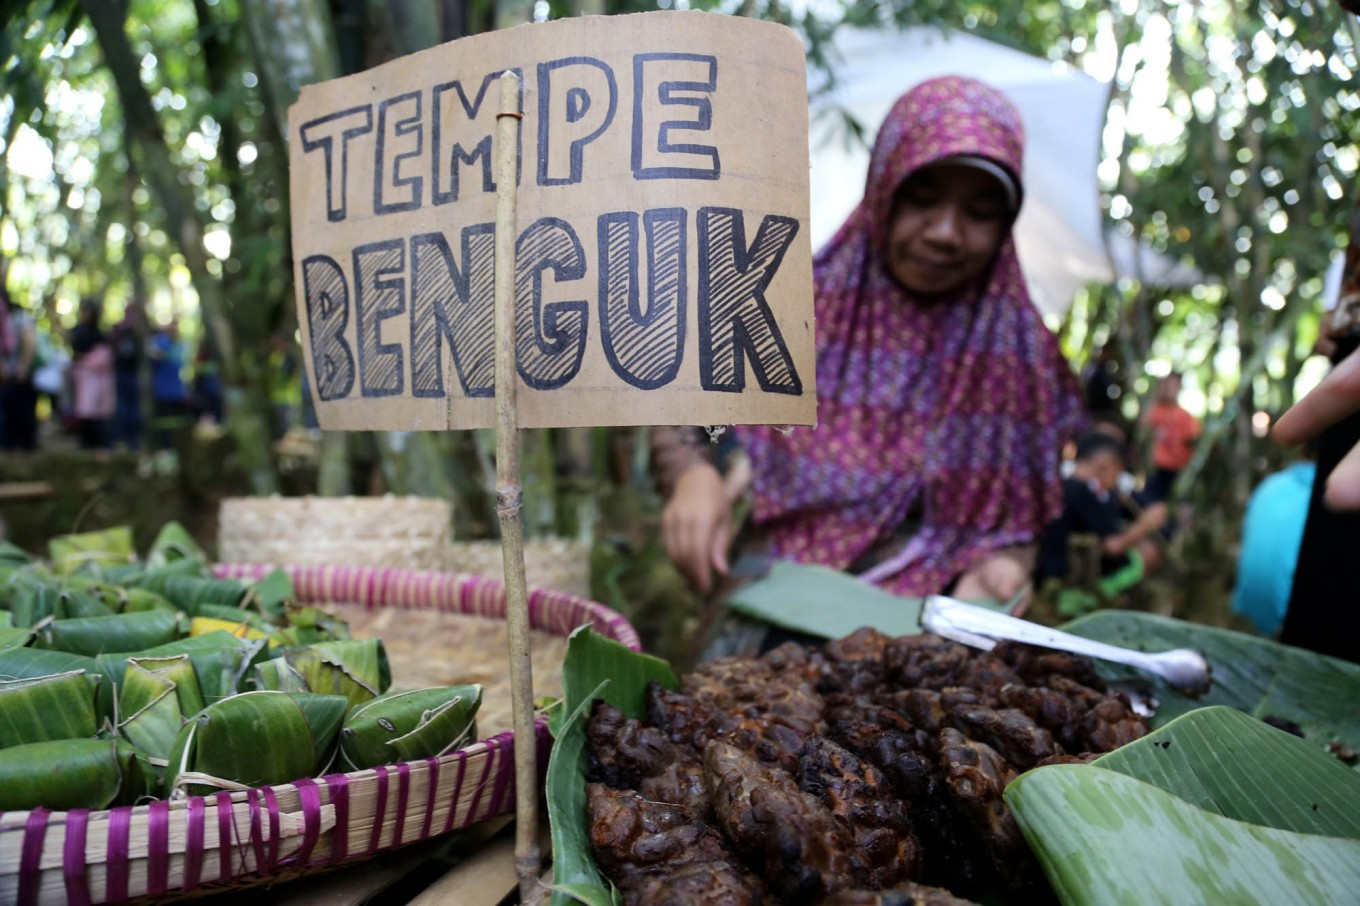 At Papringan Market, visitors can enjoy tempe benguk [non-soybean tempeh],  a Caruban village traditional cuisine. JP/Ganug Nugroho Adi